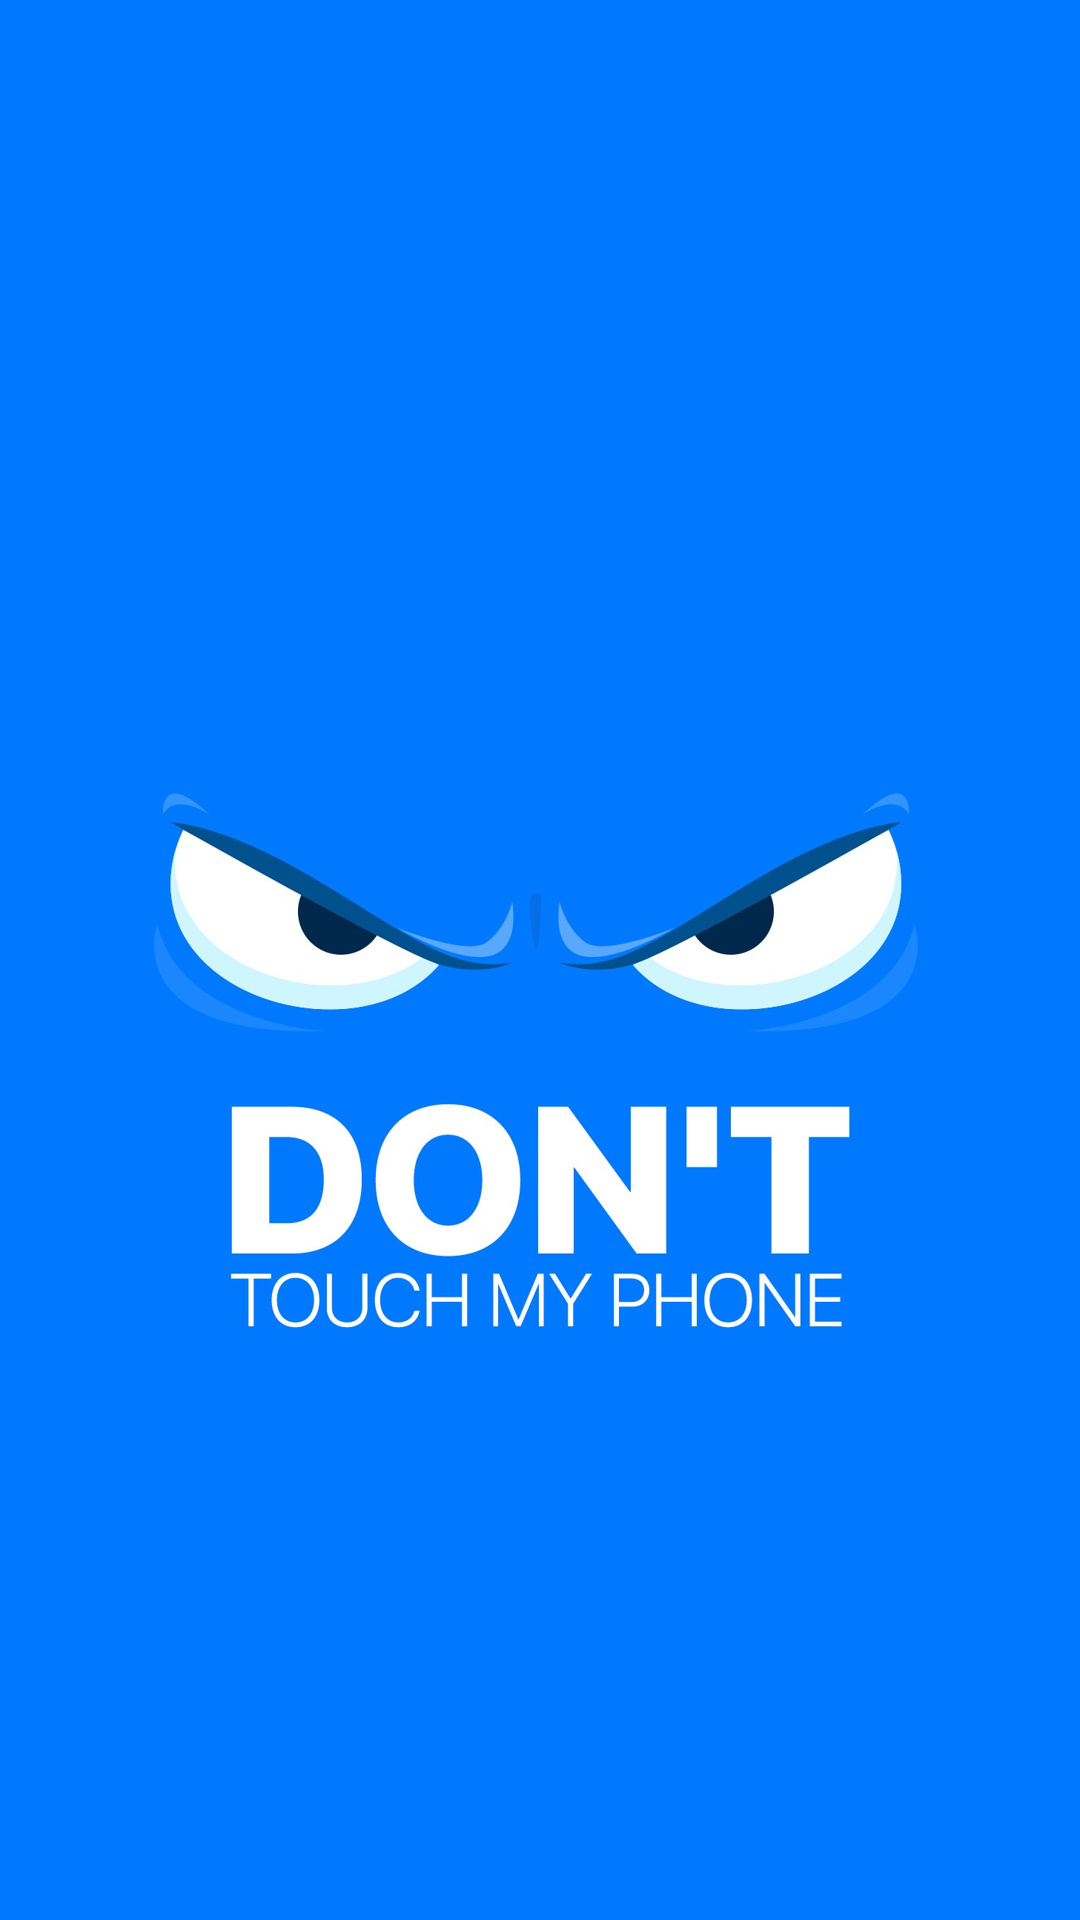 Don T Touch My Phone Wallpapers Hd HD Wallpapers Download Free Images Wallpaper [1000image.com]